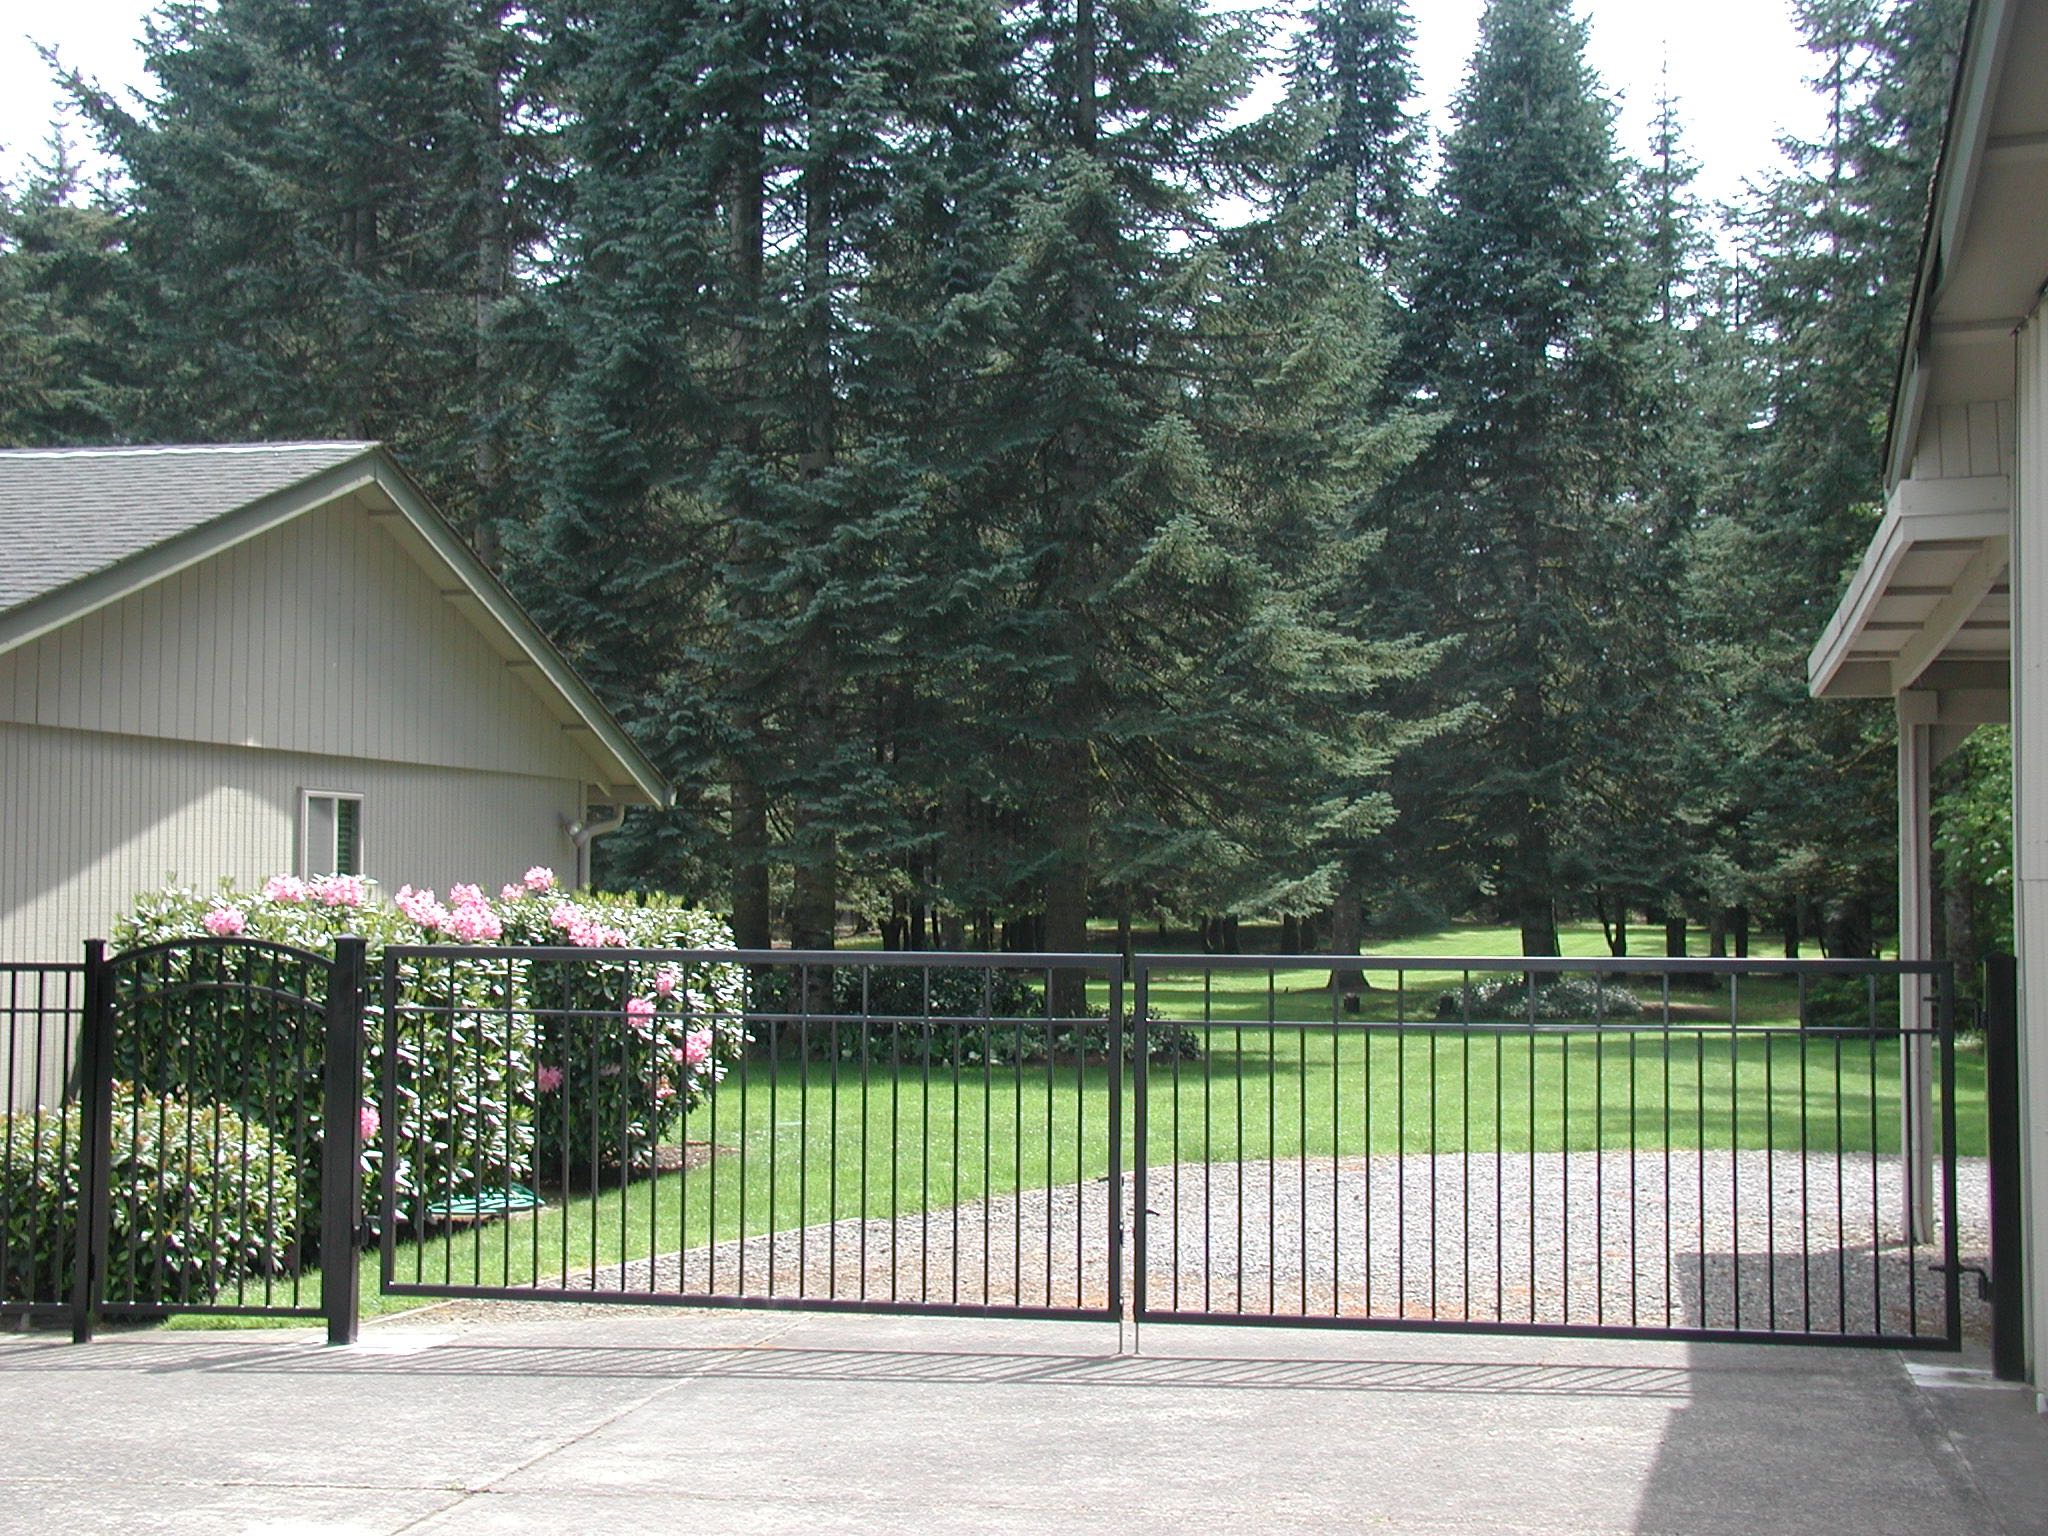 Fence Toppers Driveway Gates - Fence And Gate Styles | Riverside Fence